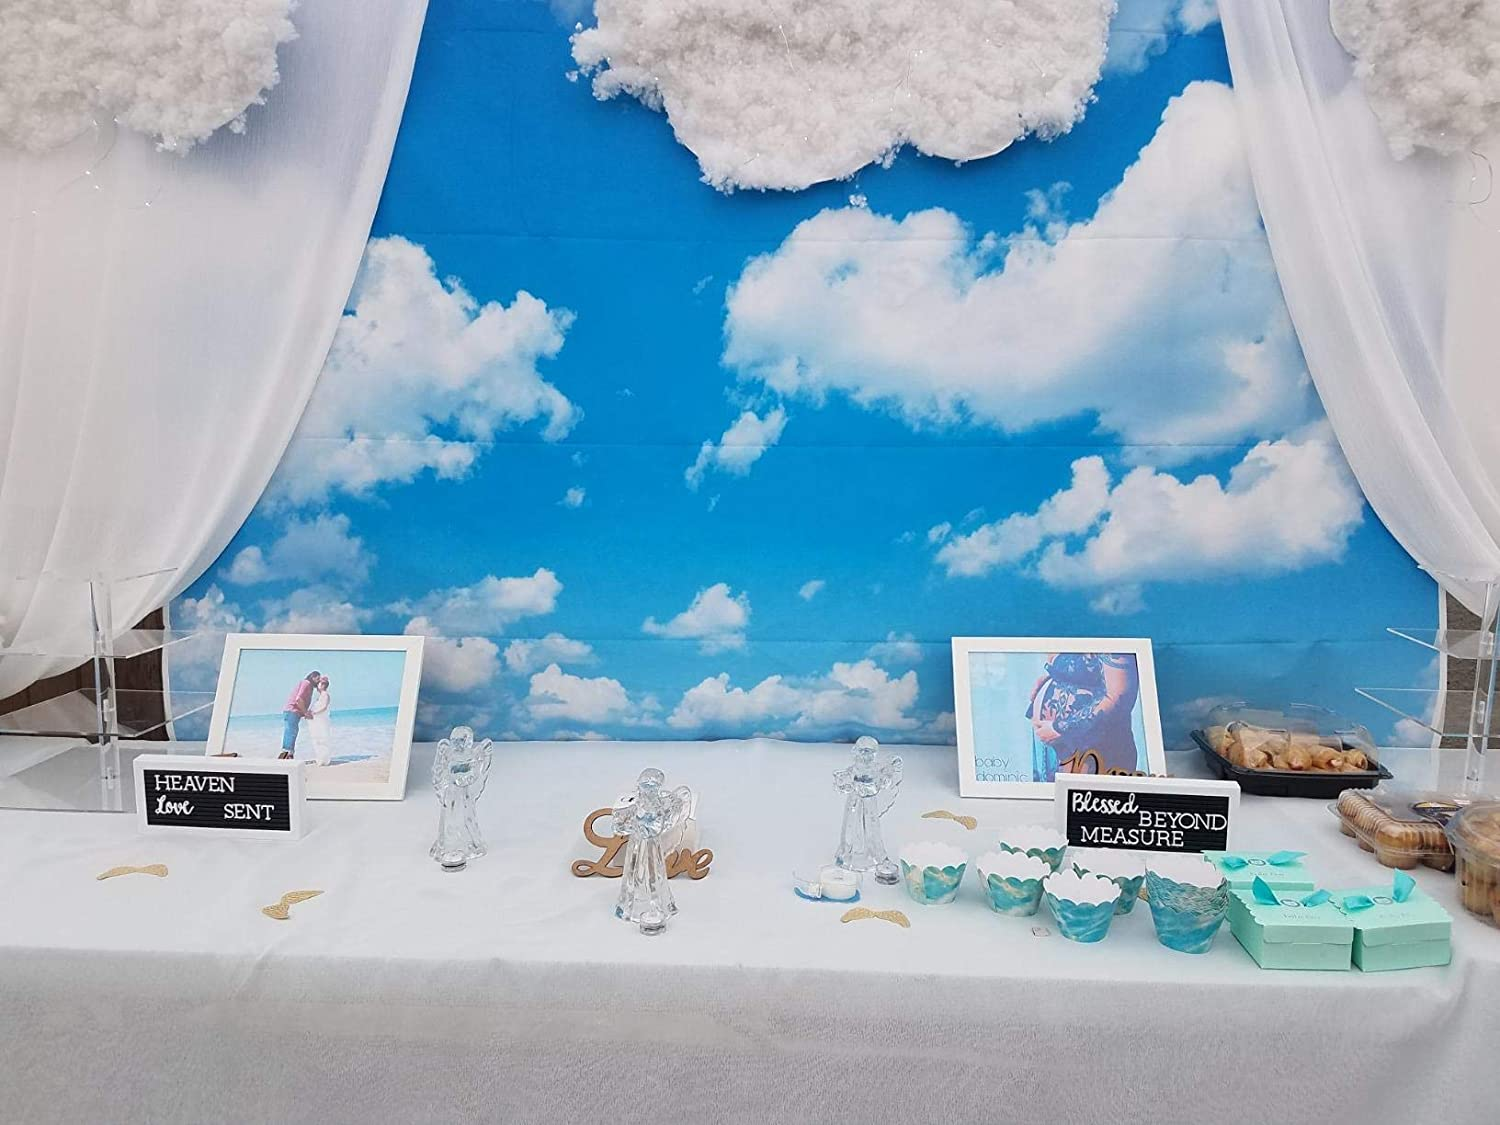 HD 7x5ft Expressway Backdrop Blue Sky Photography Background Themed Party Photo Booth Facebook YouTube Backdrop GYMT365